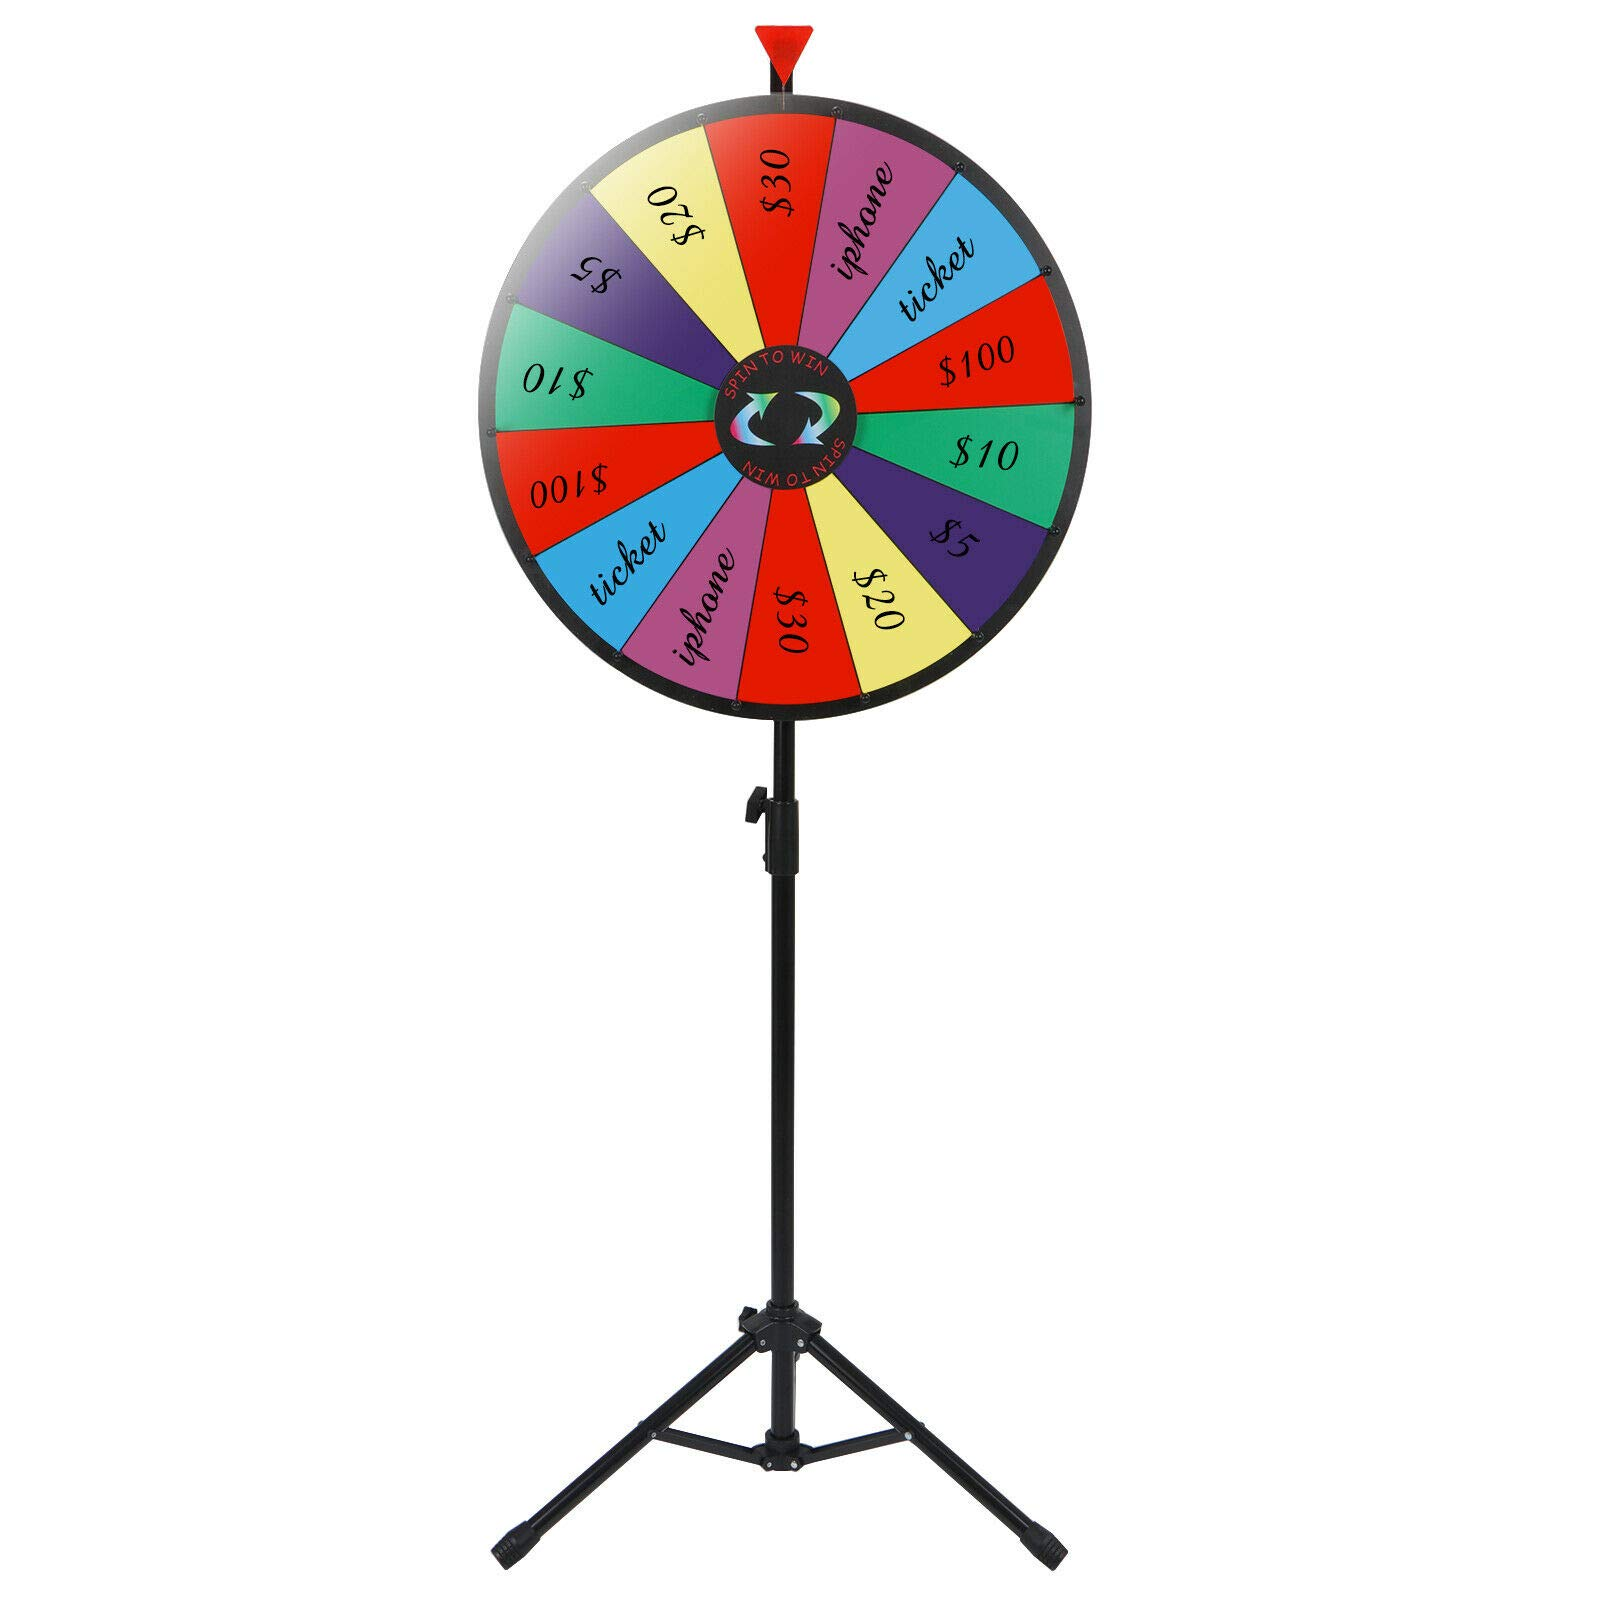 24'' Prize Wheel Metal Tripod Adjustable Floor Stand Editable Reusable Dry Erase Color Portable 14 Slot Perfect For Trade-shows Promotion Activities Carnivals Annual Meetings Holiday Activities Parties by Auténtico (Image #1)